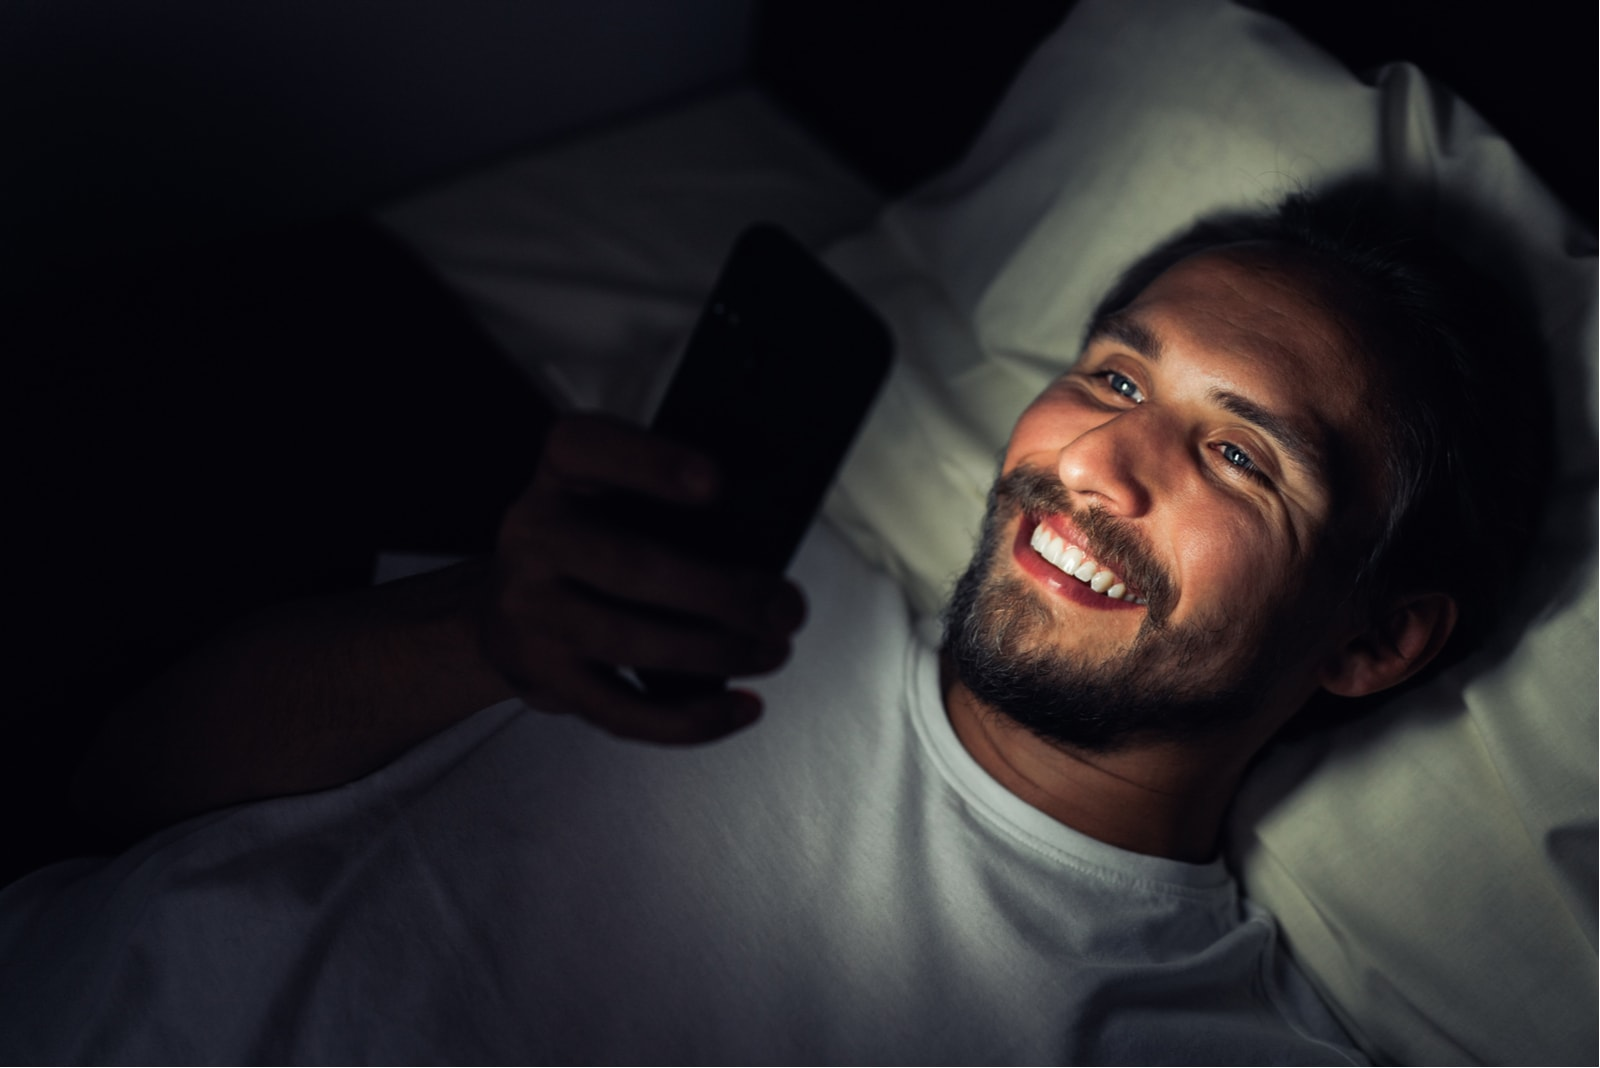 a smiling bearded man lies and reads a message on his smartphone